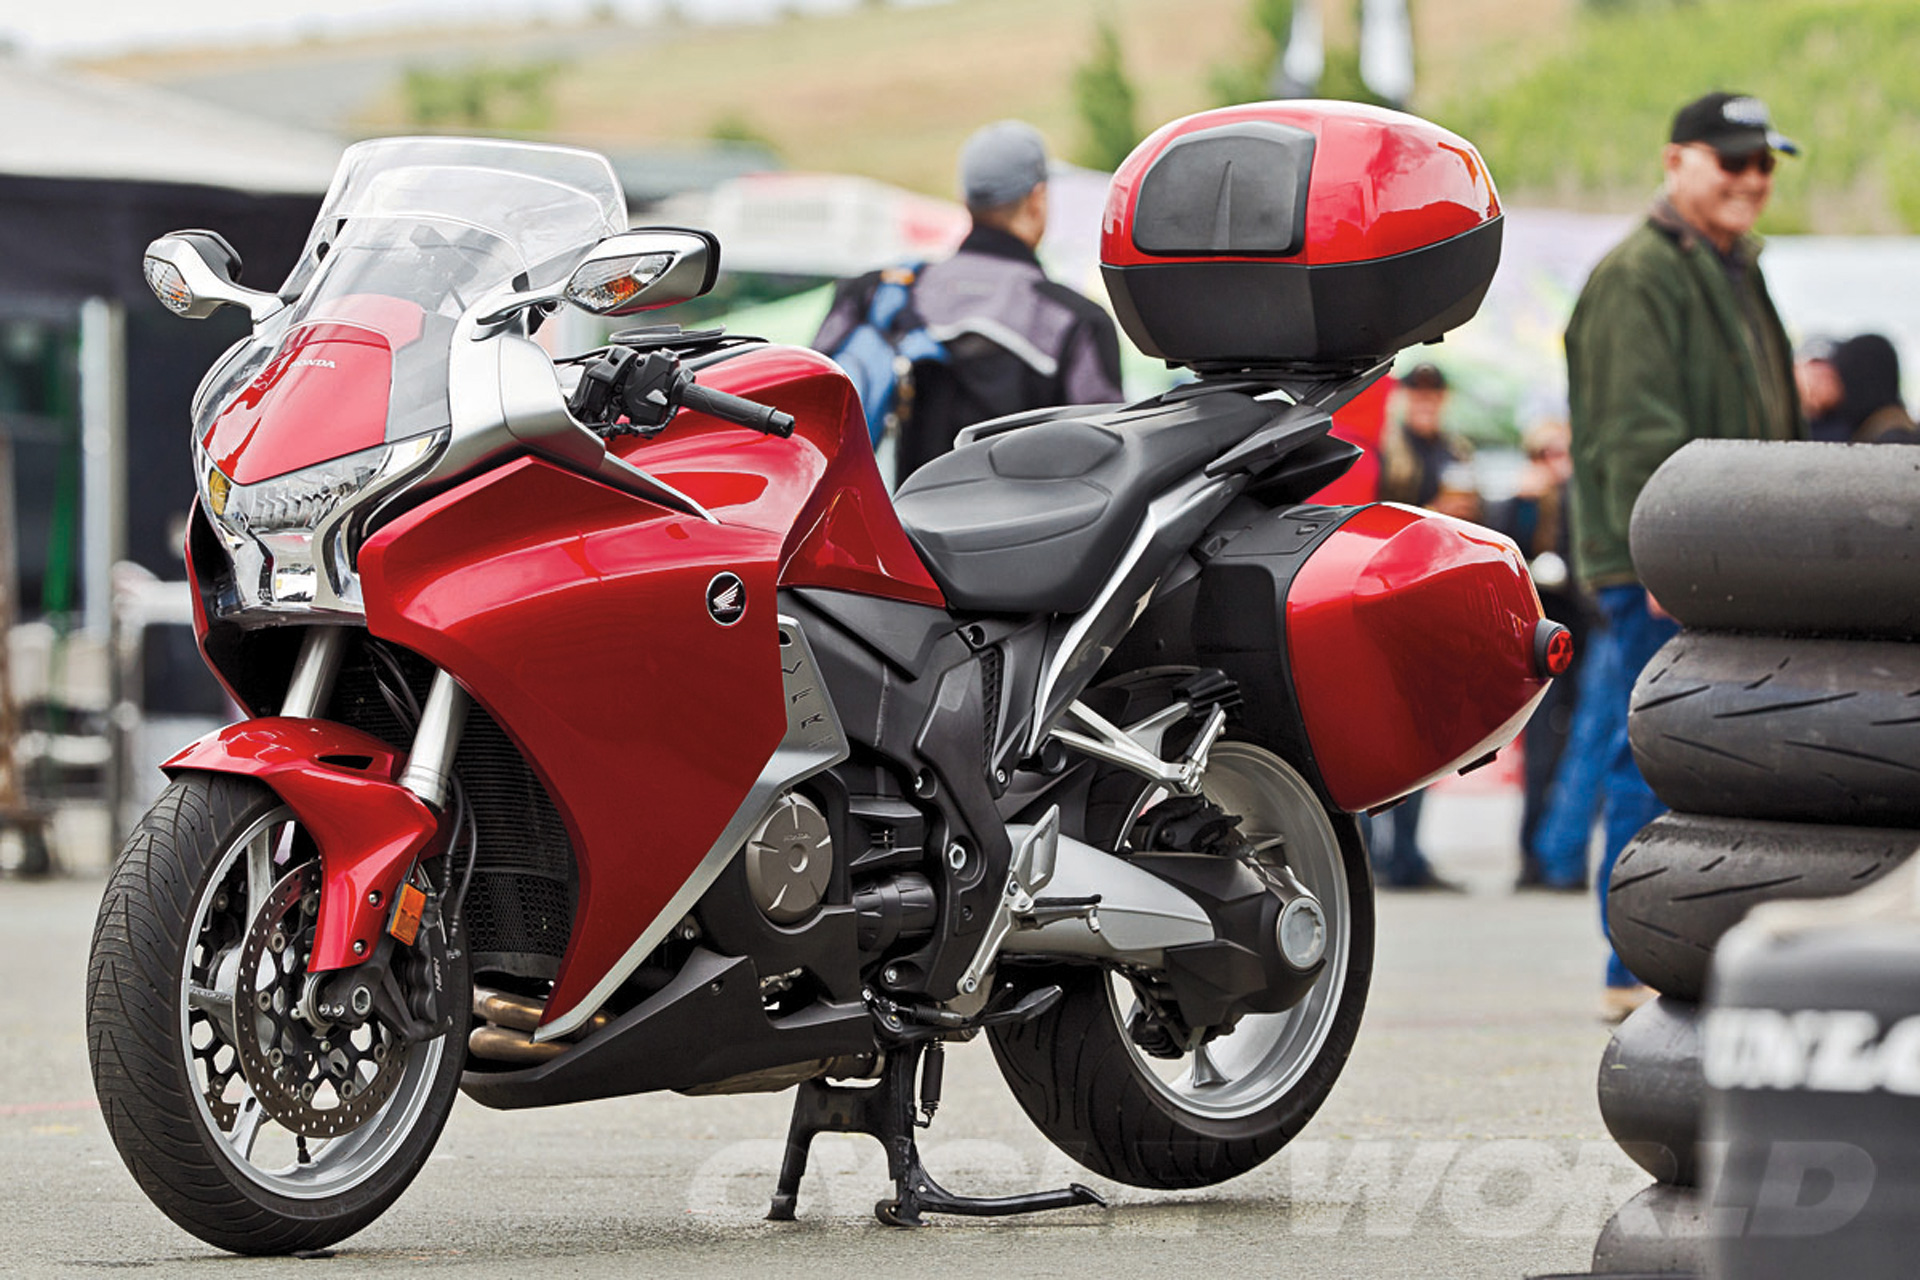 Honda VFR1200F DCT Long-Term Test Update Review- Motorcycle Tests